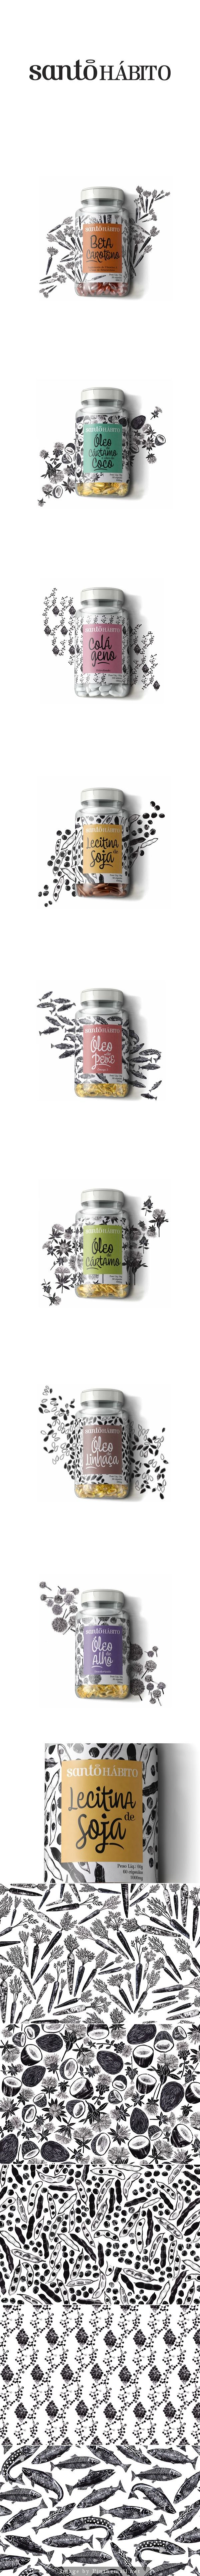 Dietary supplement / vitamin #packaging design. I love the black & white print and product photography.